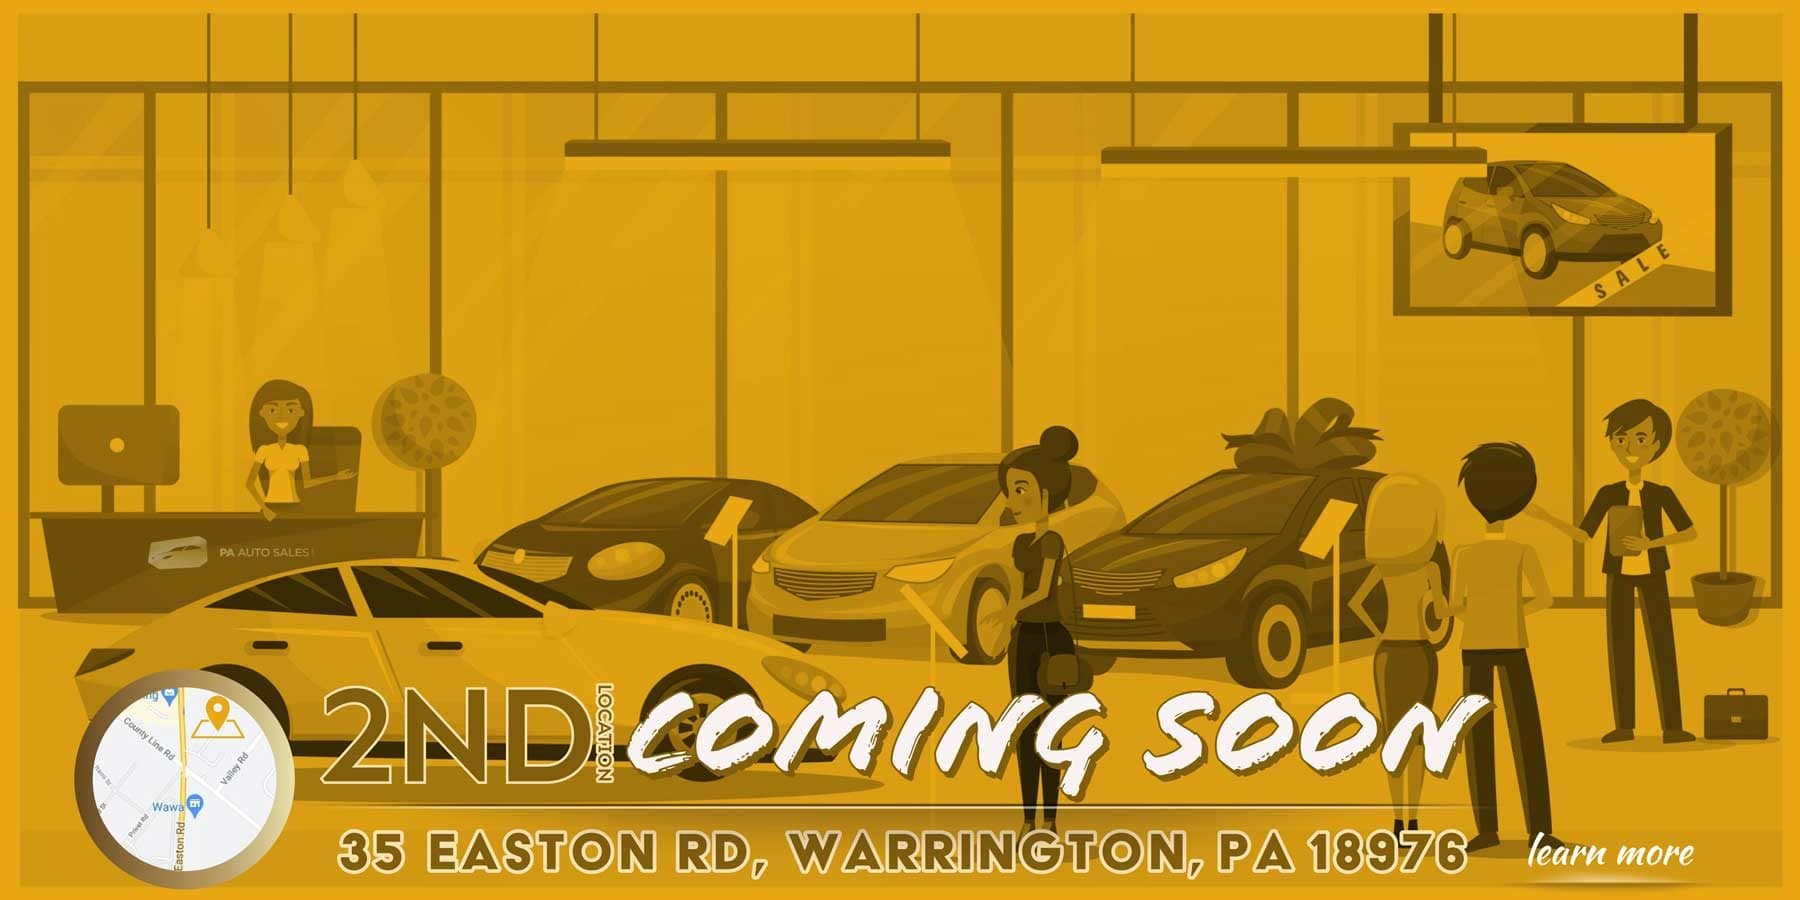 2ND Location Coming Soon - PA Auto Sales on 35 Easton Road Warrington, PA 18976